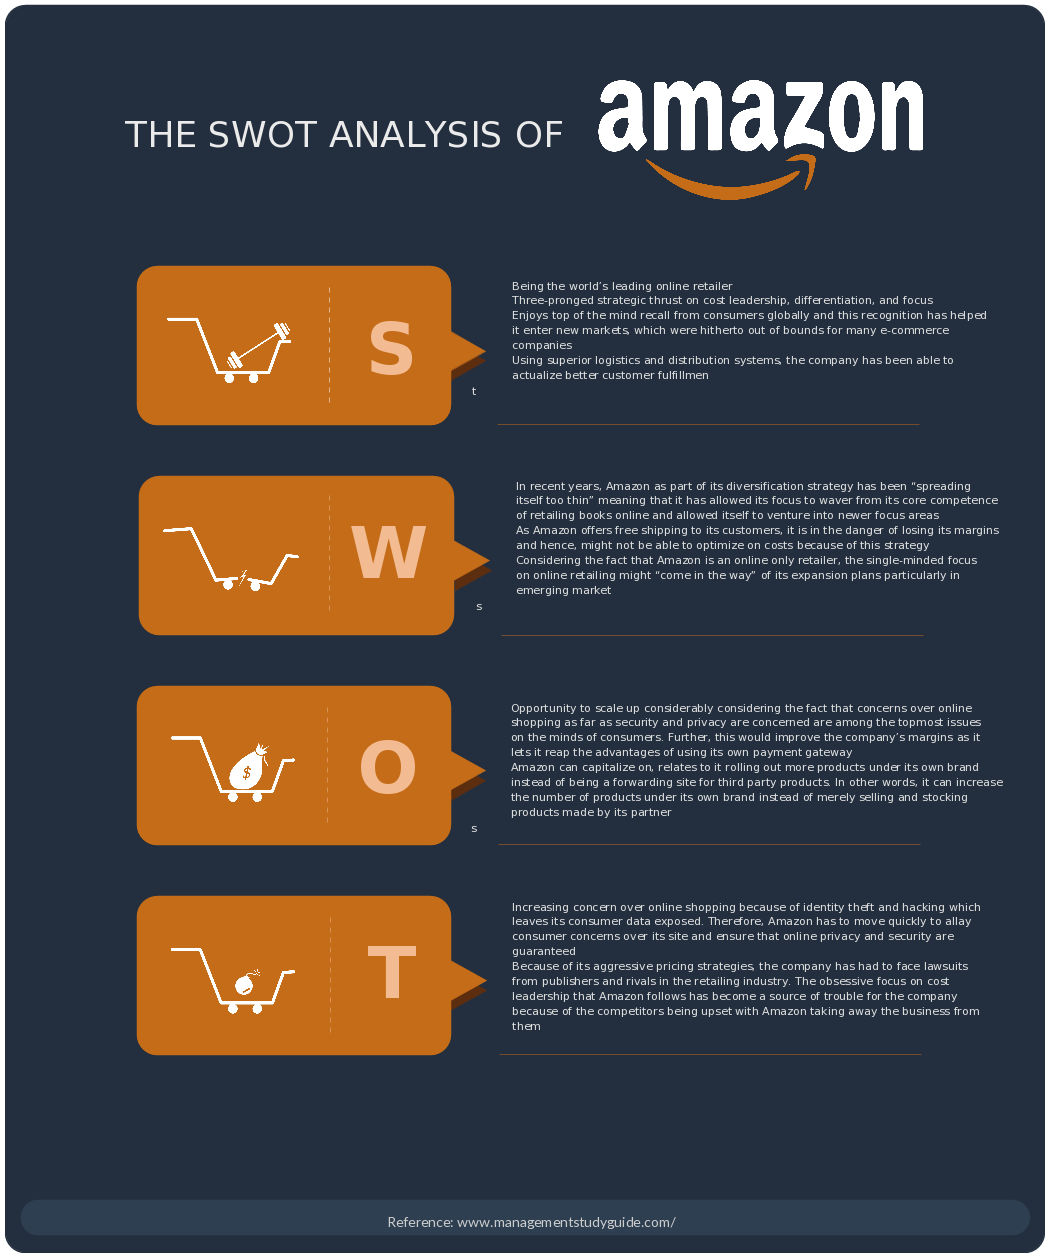 Analysis of Amazon's Corporate Strategy